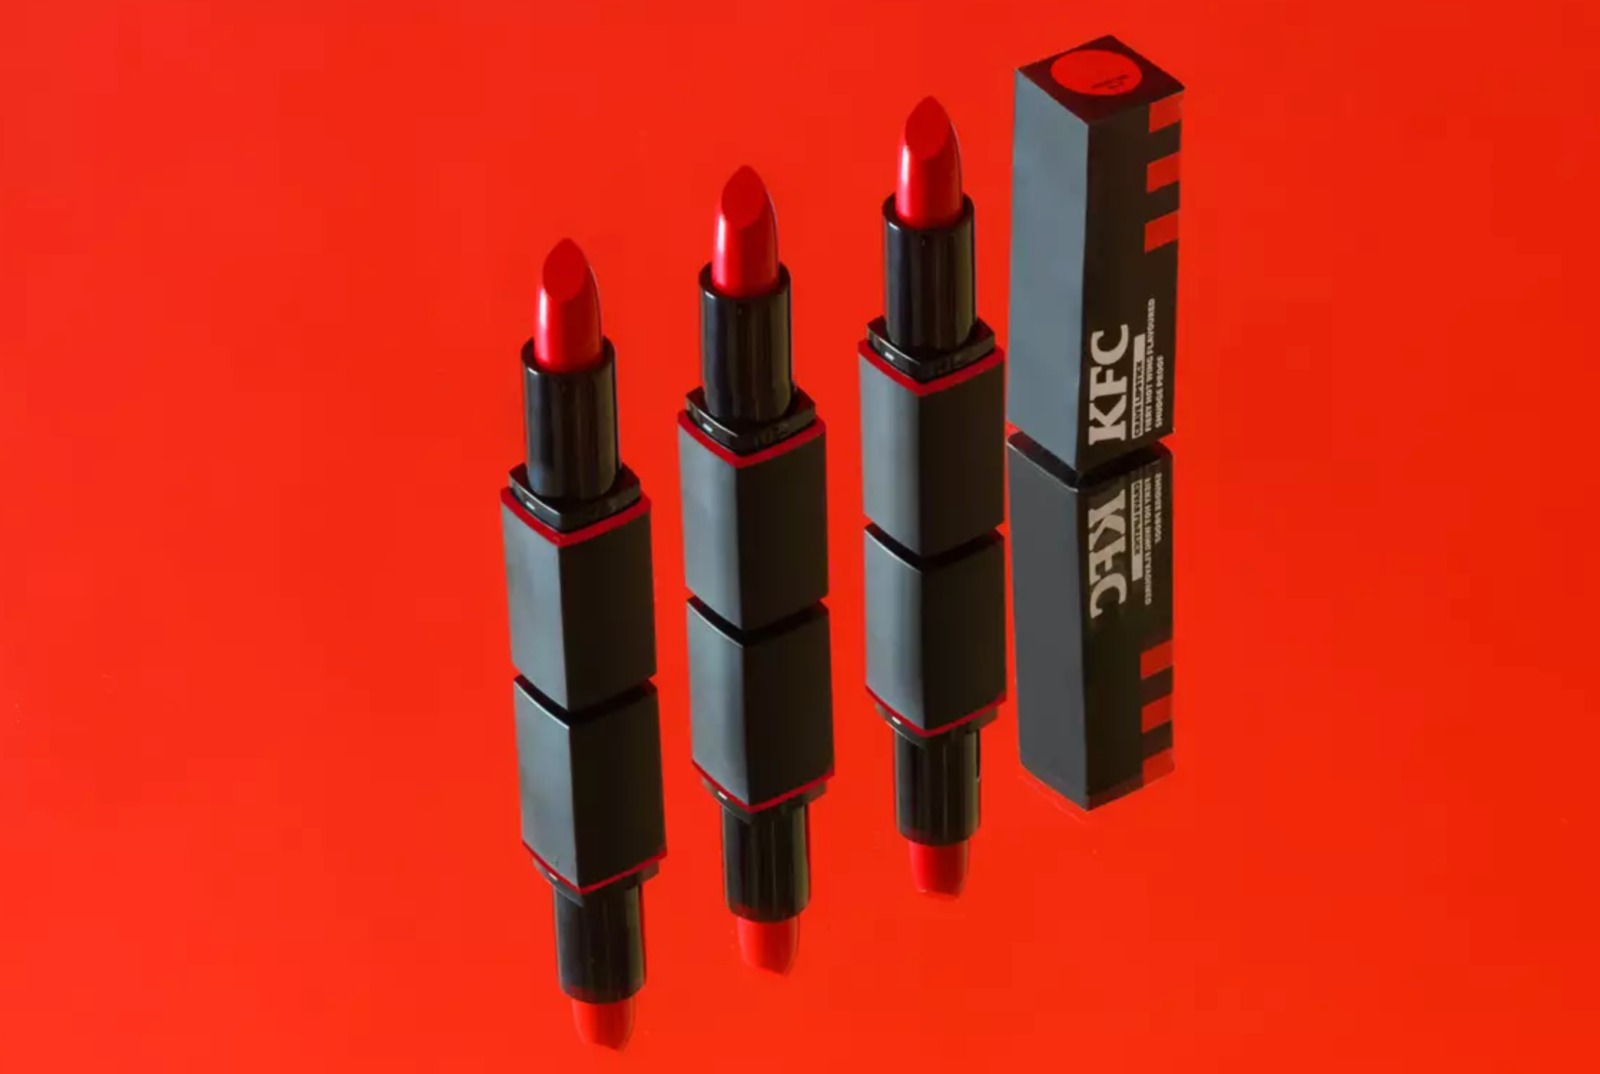 KFC has just launched a 'bucket red' lipstick that tastes like hot wings, The Manc